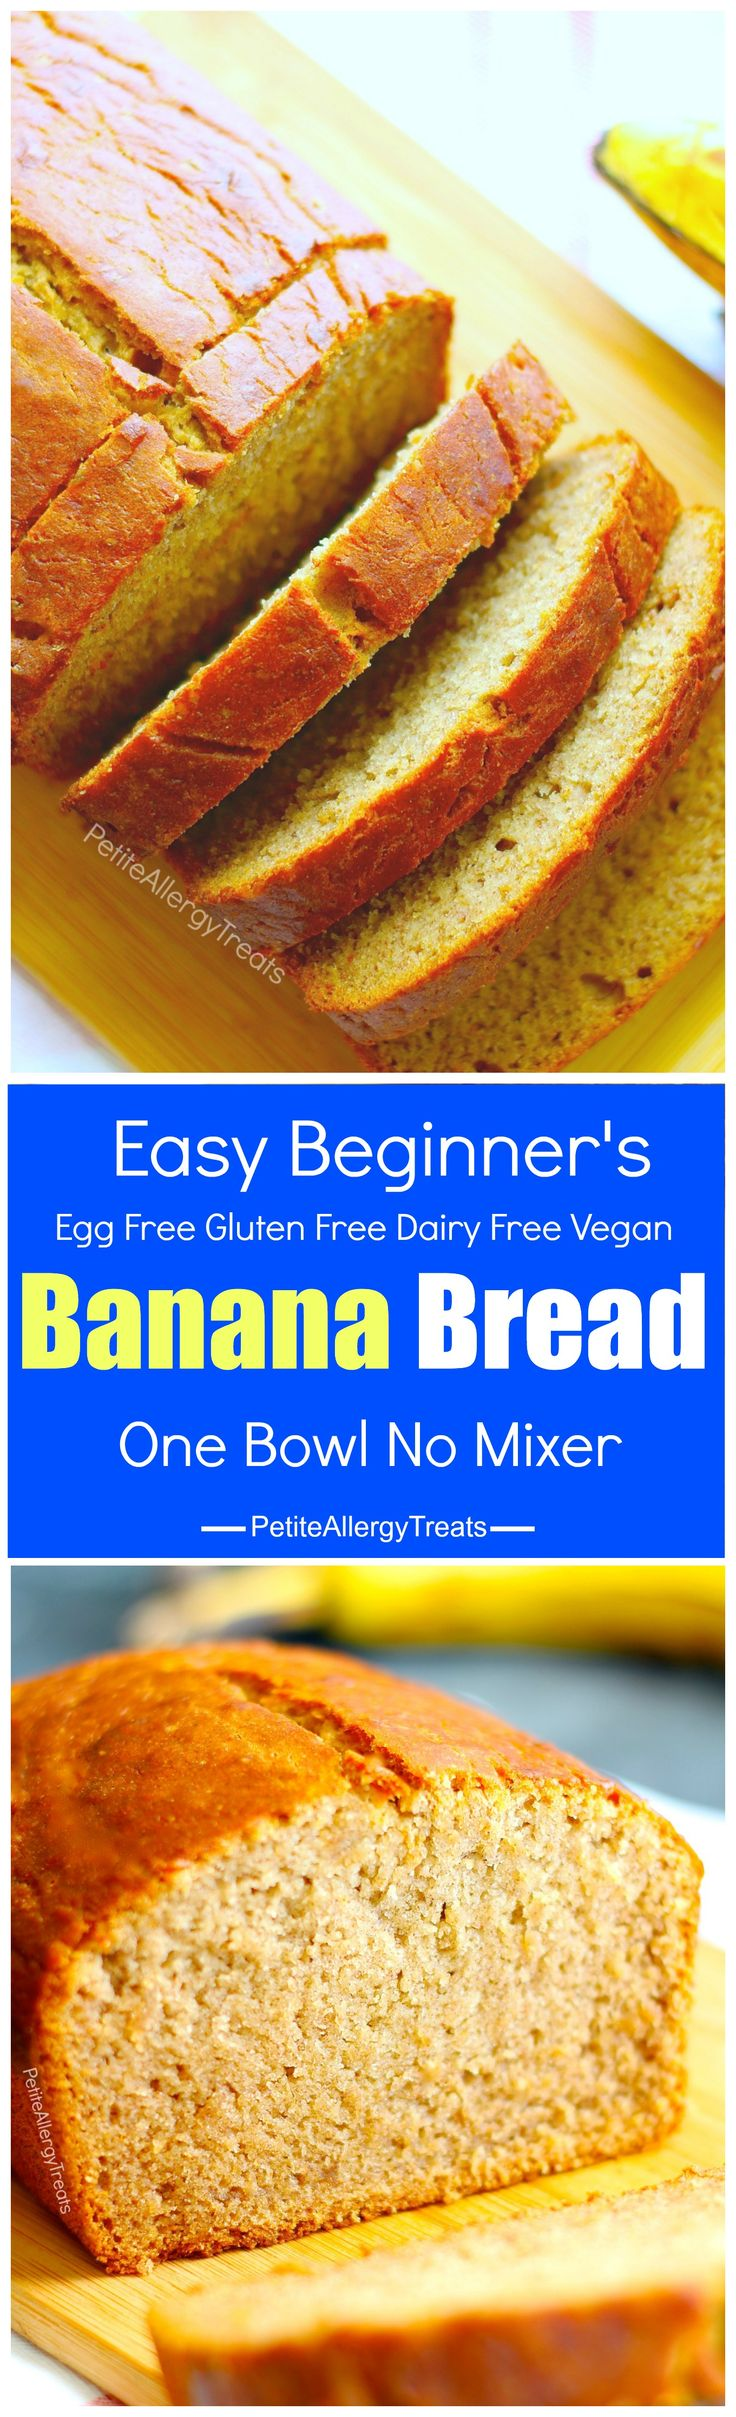 Easy Gluten Free Banana Bread Recipe (egg free vegan dairy free) A gluten free beginner's easy recipe! No mixer required and is egg free, dairy free and Food Allergy Friendly!